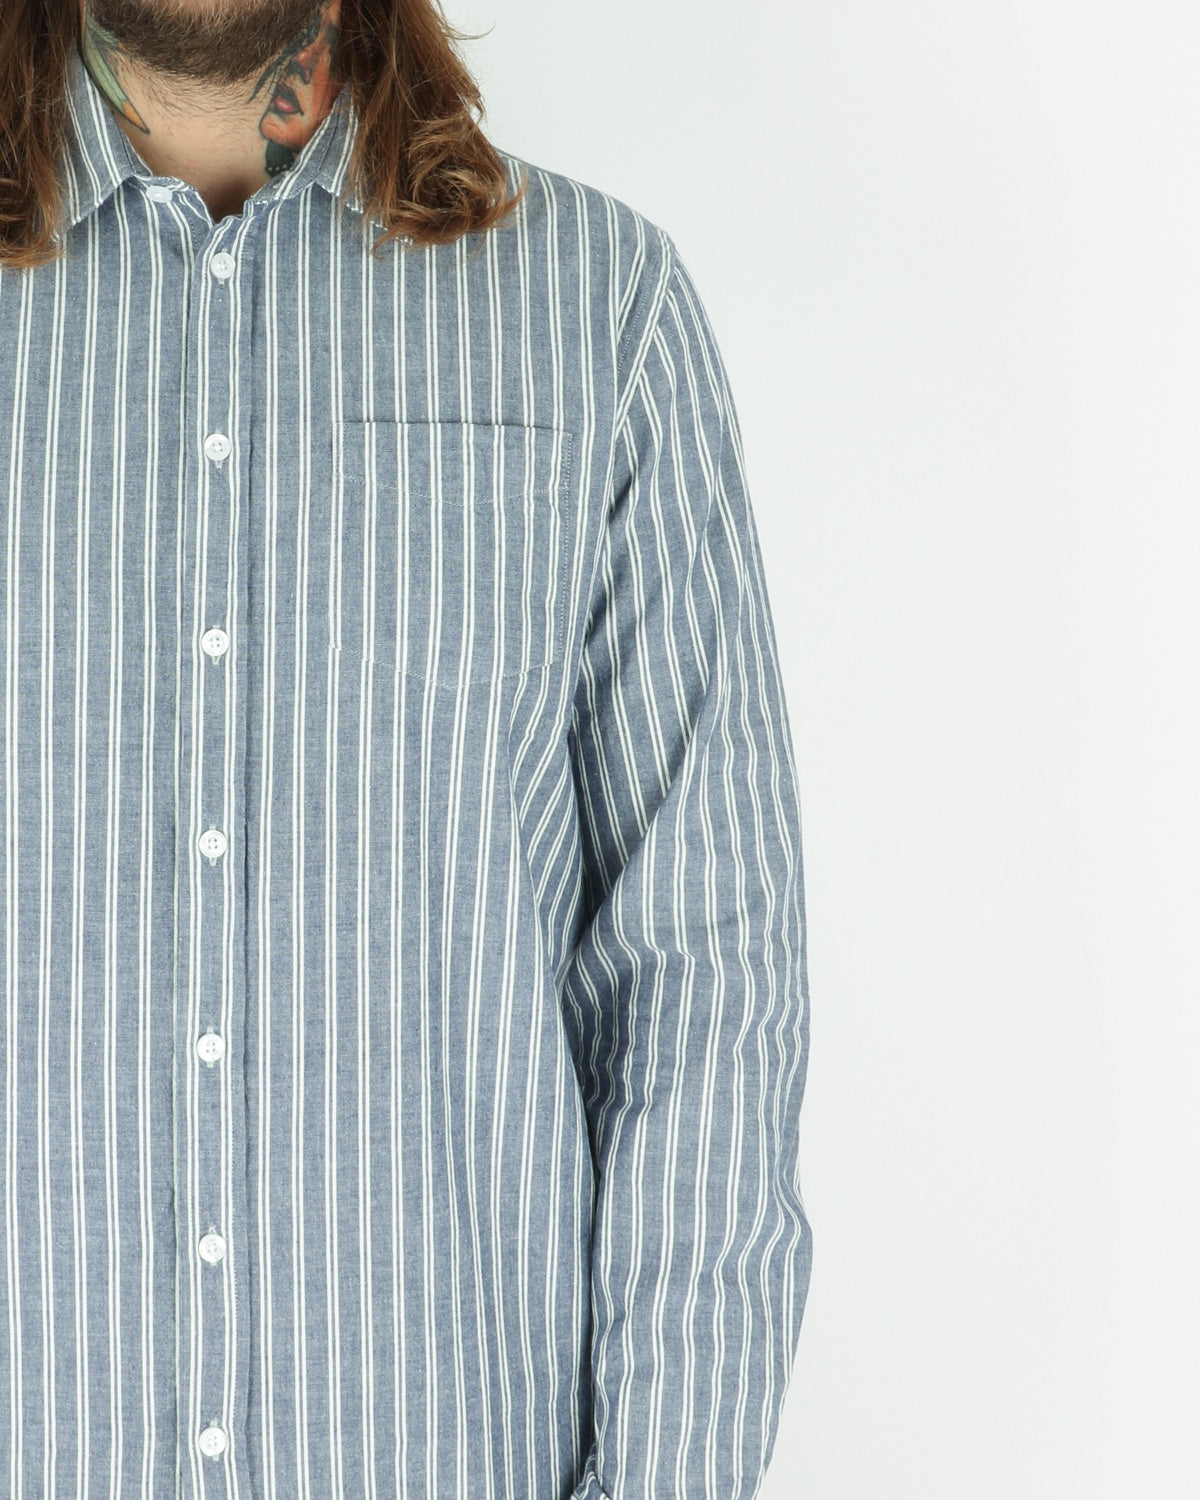 libertine libertine_lynch shirt_navy stripe_view_2_3